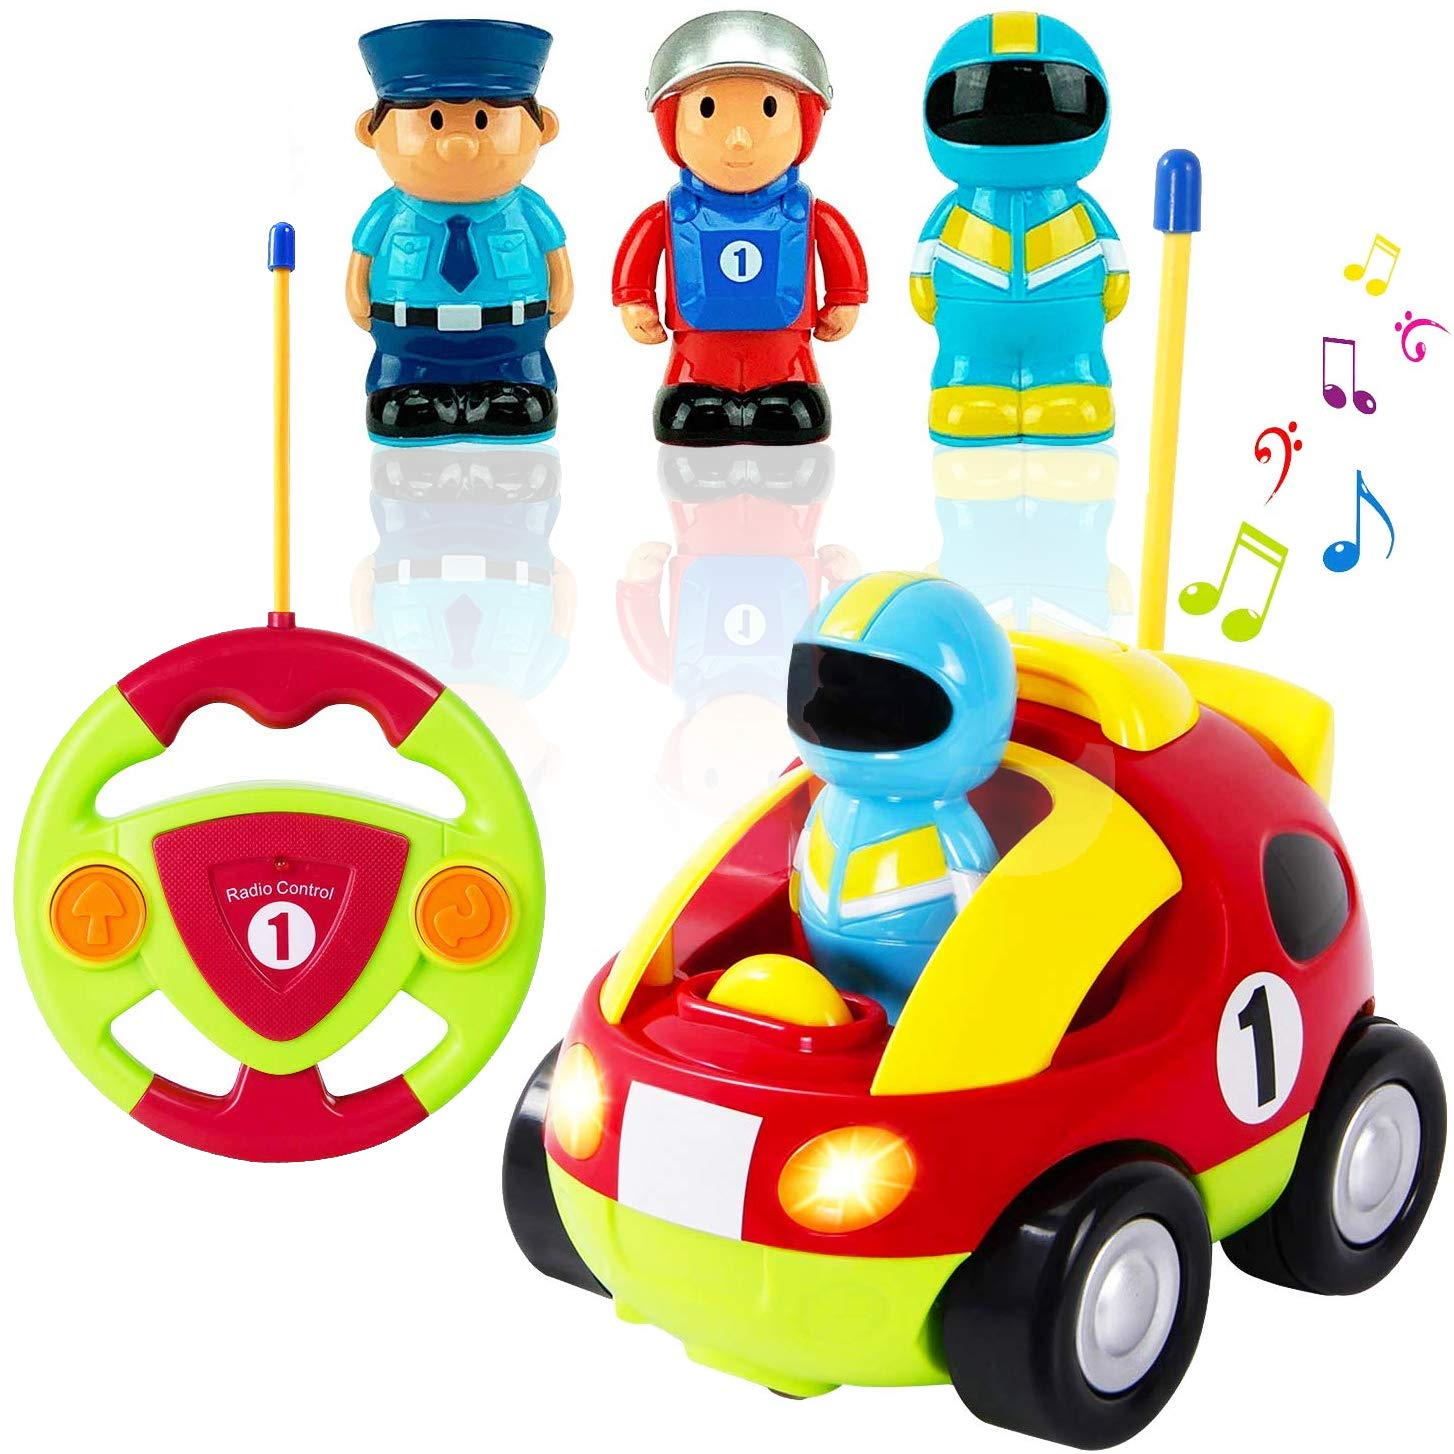 Liberty Pull Apart >> Liberty Imports My First Cartoon R C Race Car Radio Remote Control Toy For Baby Toddlers Children